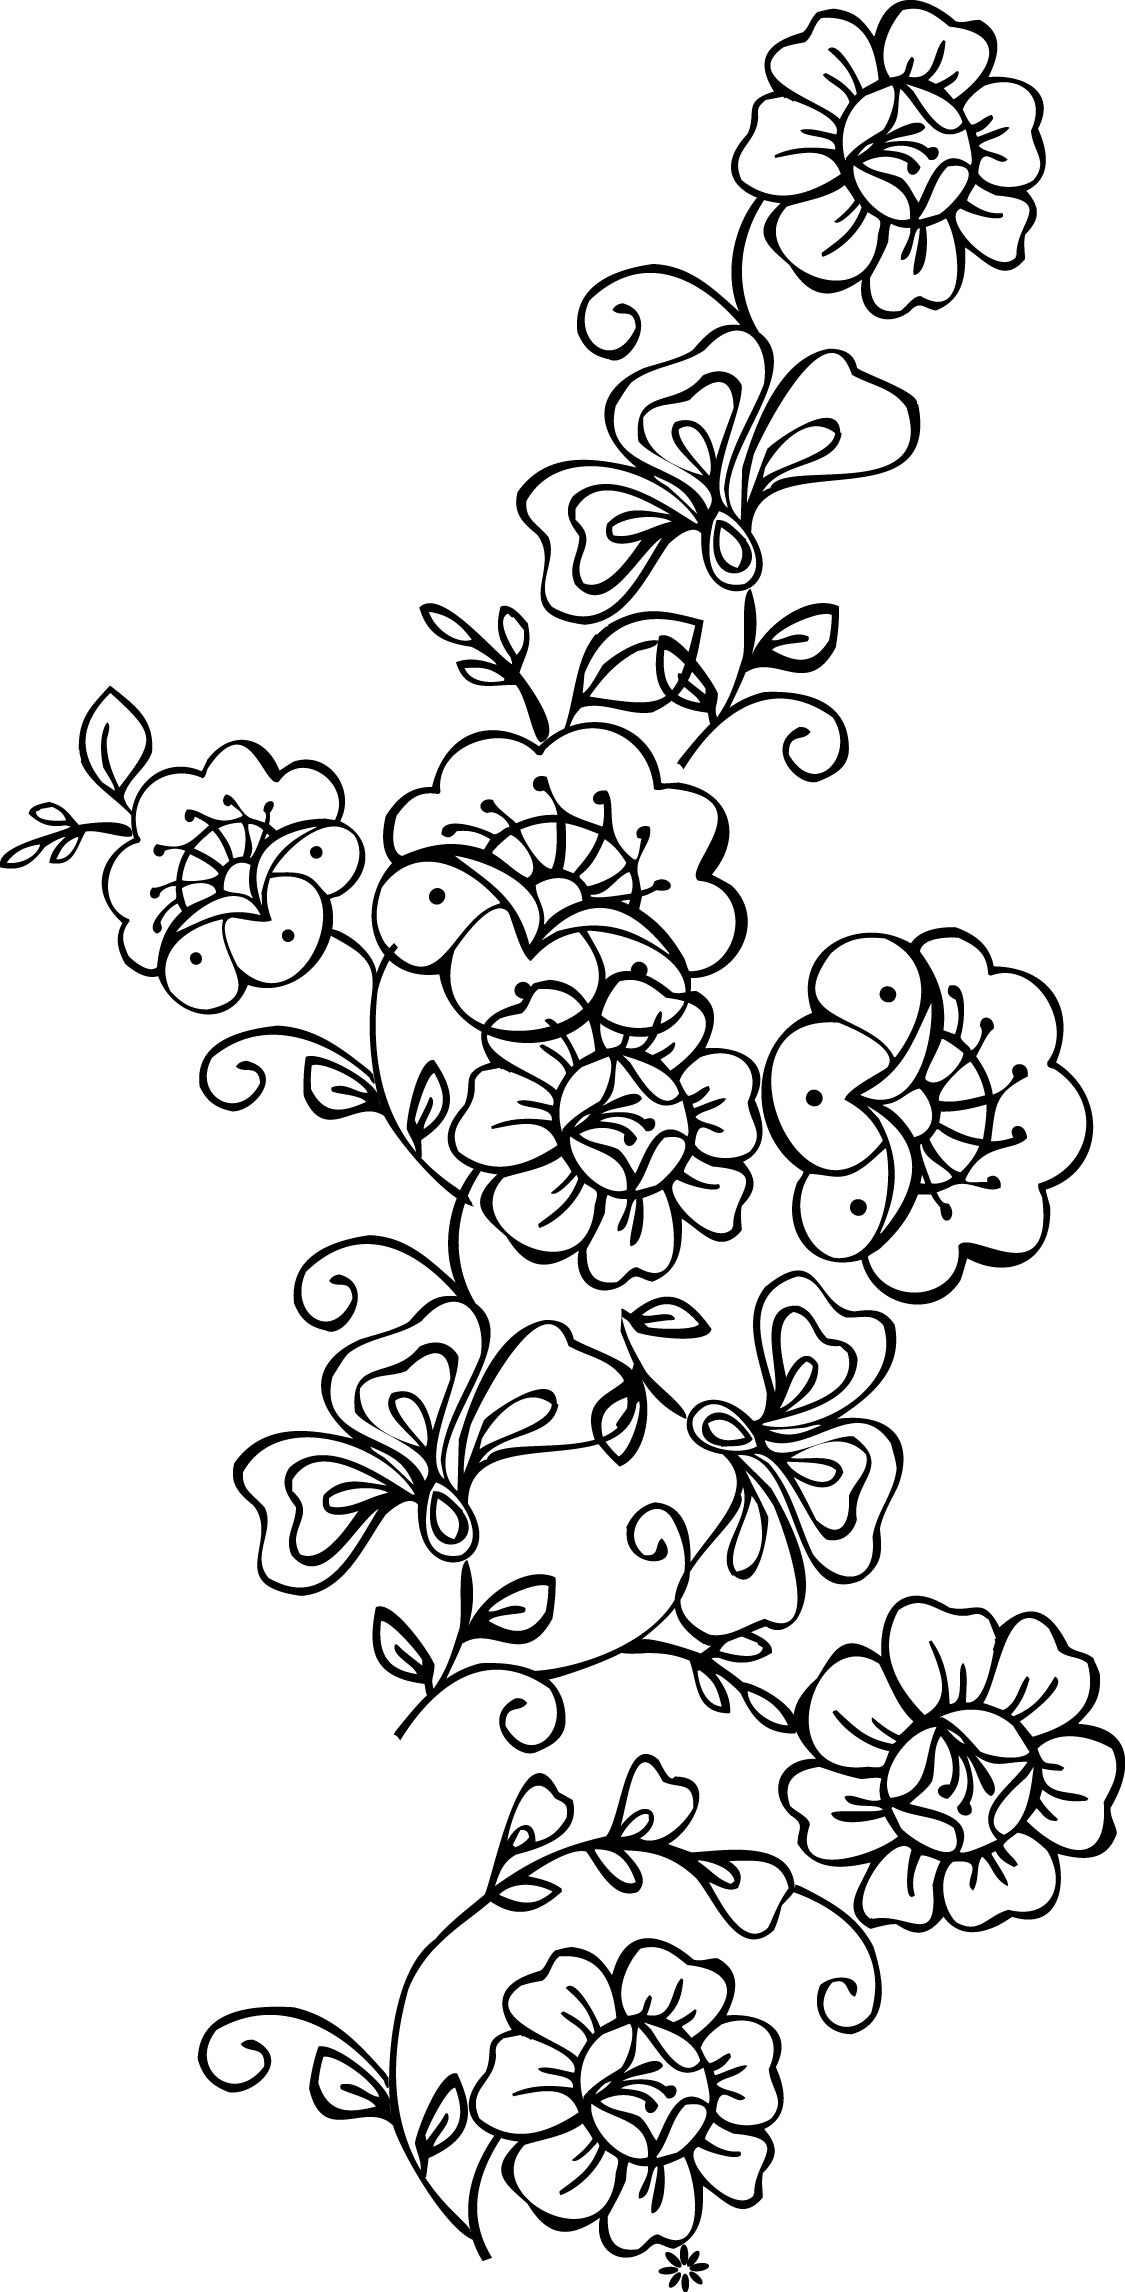 Free Printable Stencils Of Trees | Stencils Designs Free Printable - Free Printable Wall Stencils For Painting